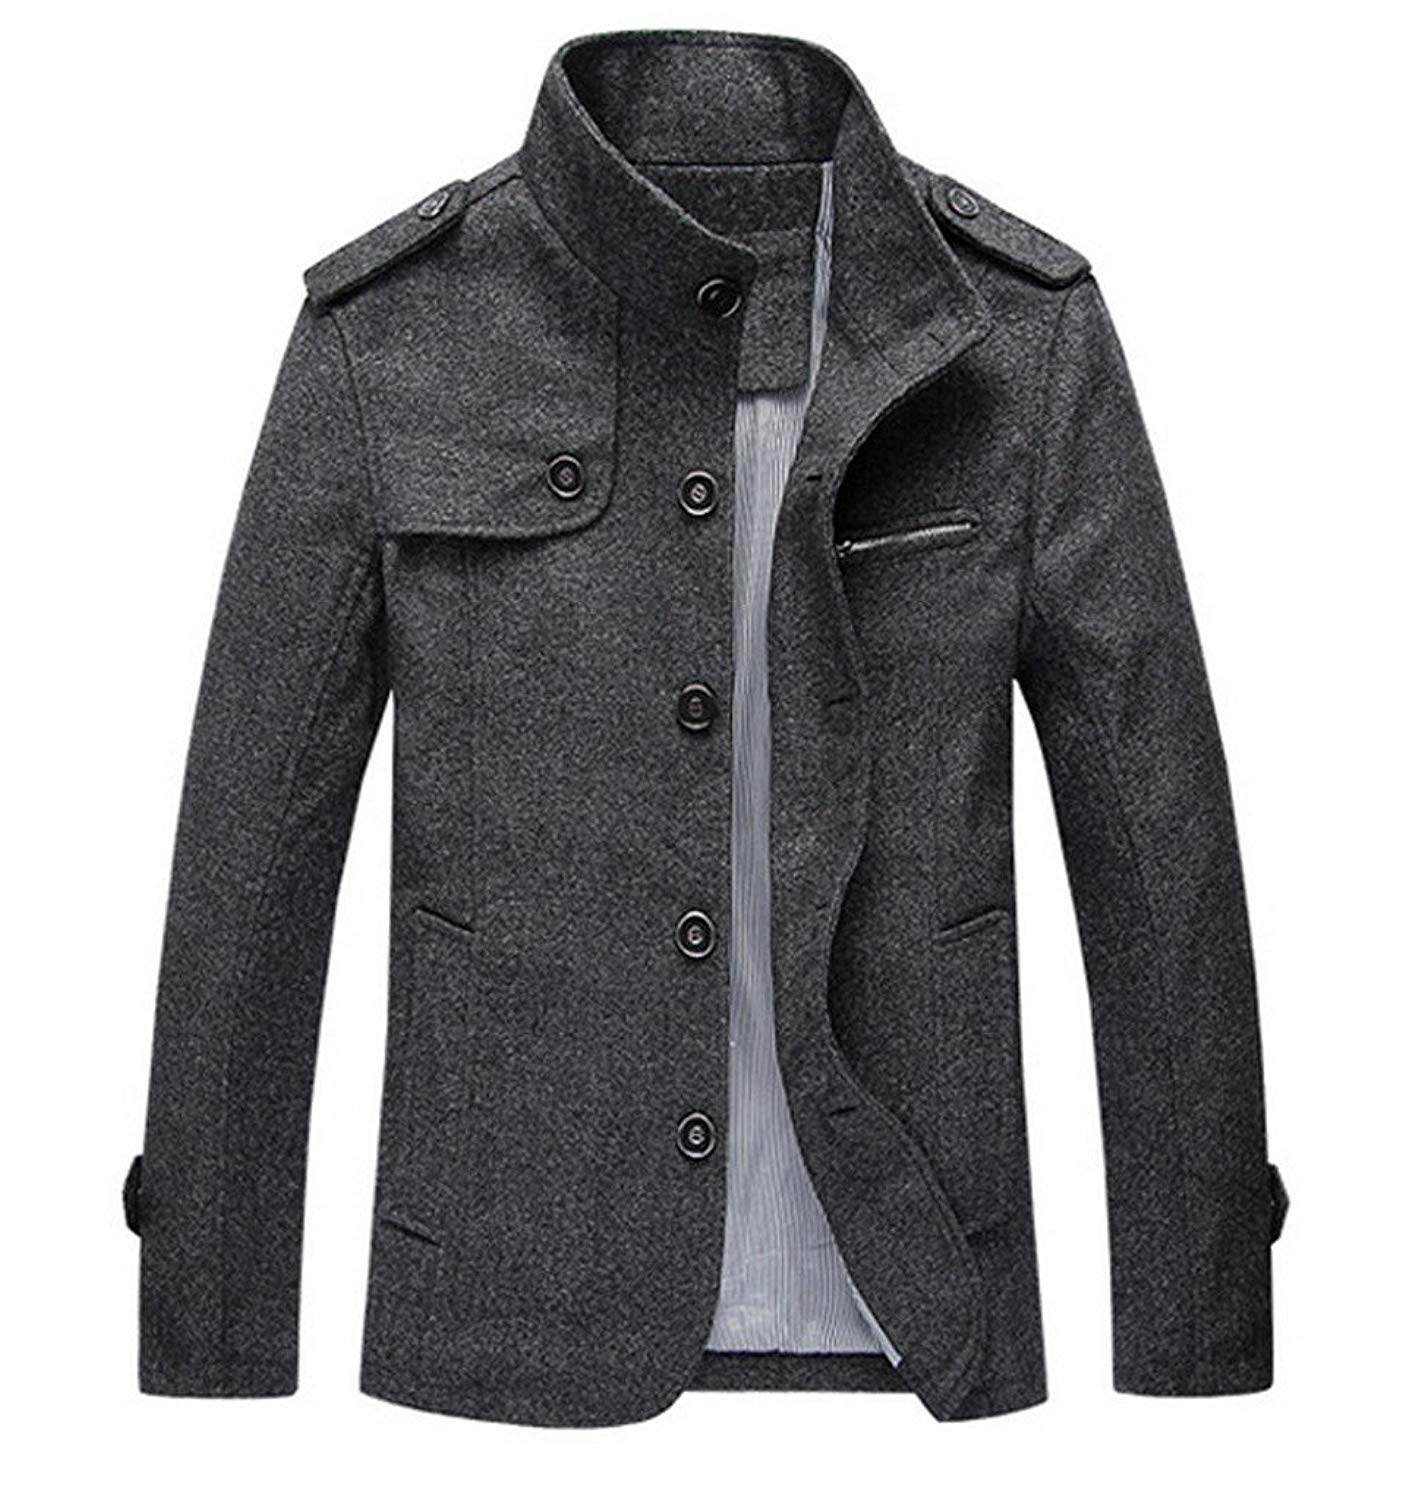 8c2dbf8e2f8 Get Quotations · YGT Men s Wool Blend Top Coat Single Breasted Buttons  Military Inspired Trench Coat